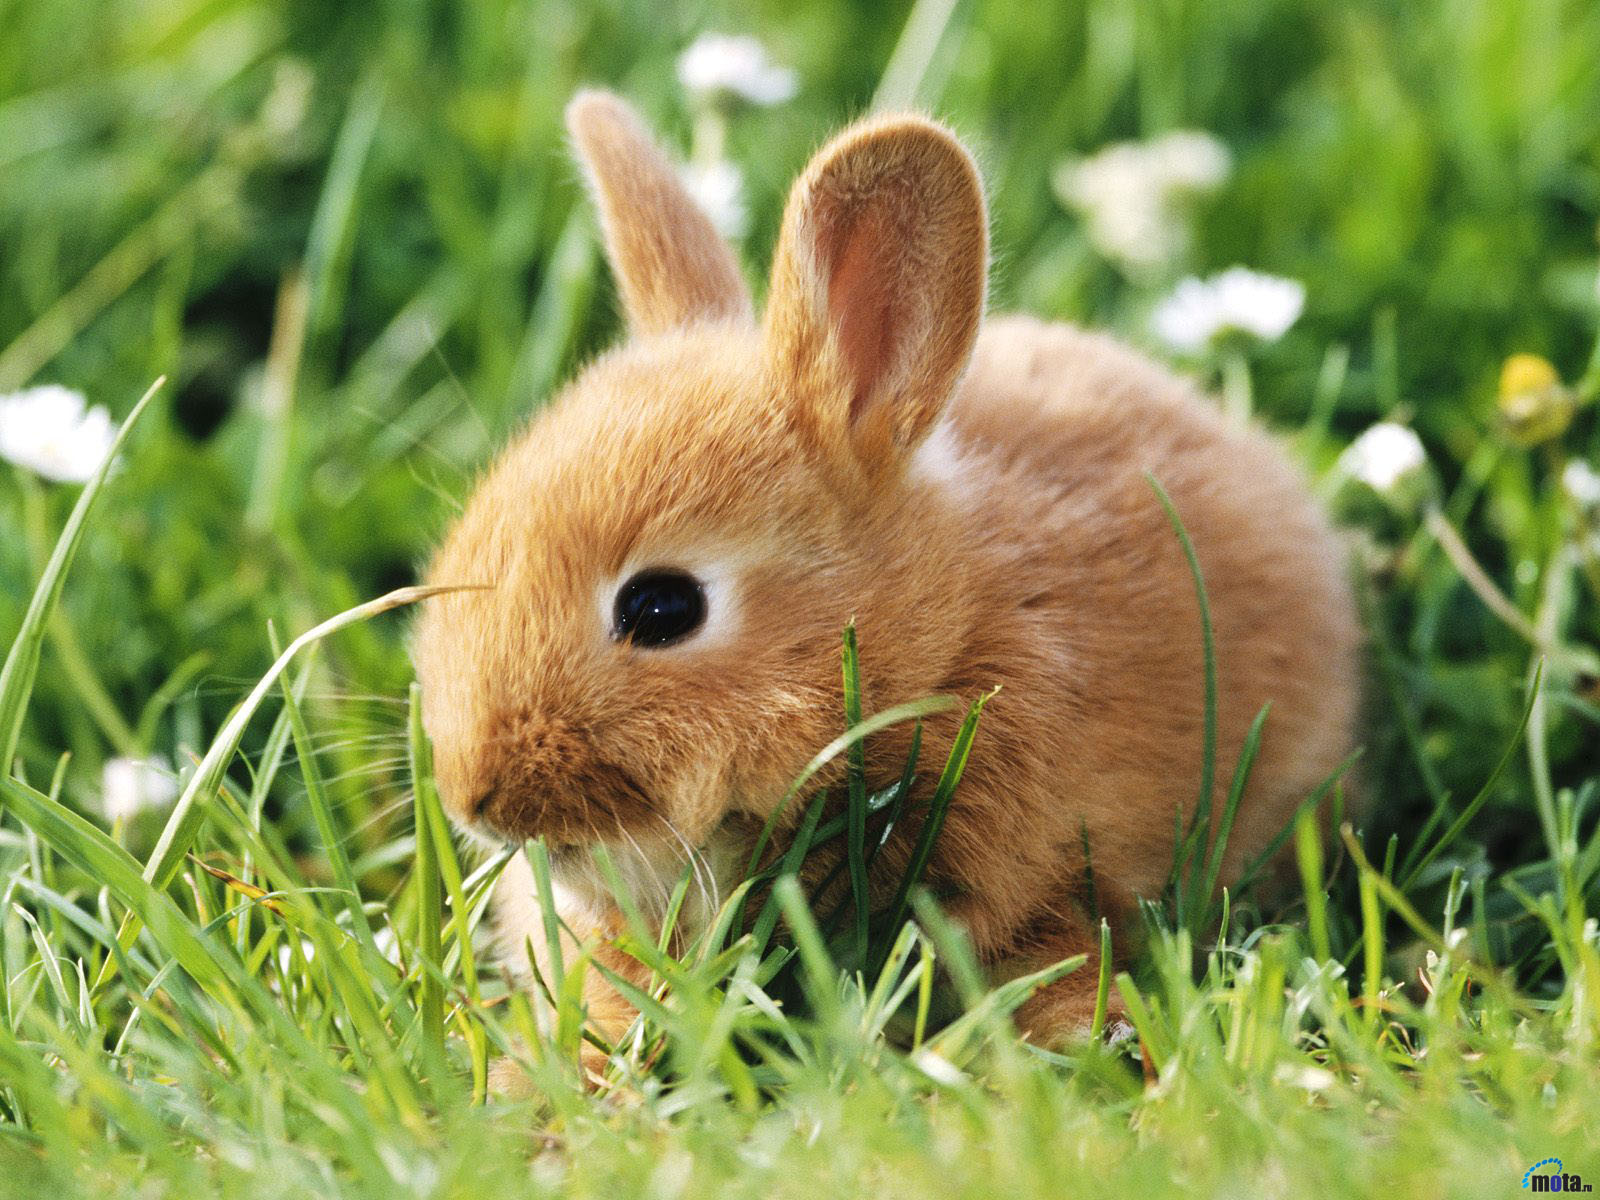 rabbit wallpaper,rabbit,domestic rabbit,rabbits and hares,mountain cottontail,mammal